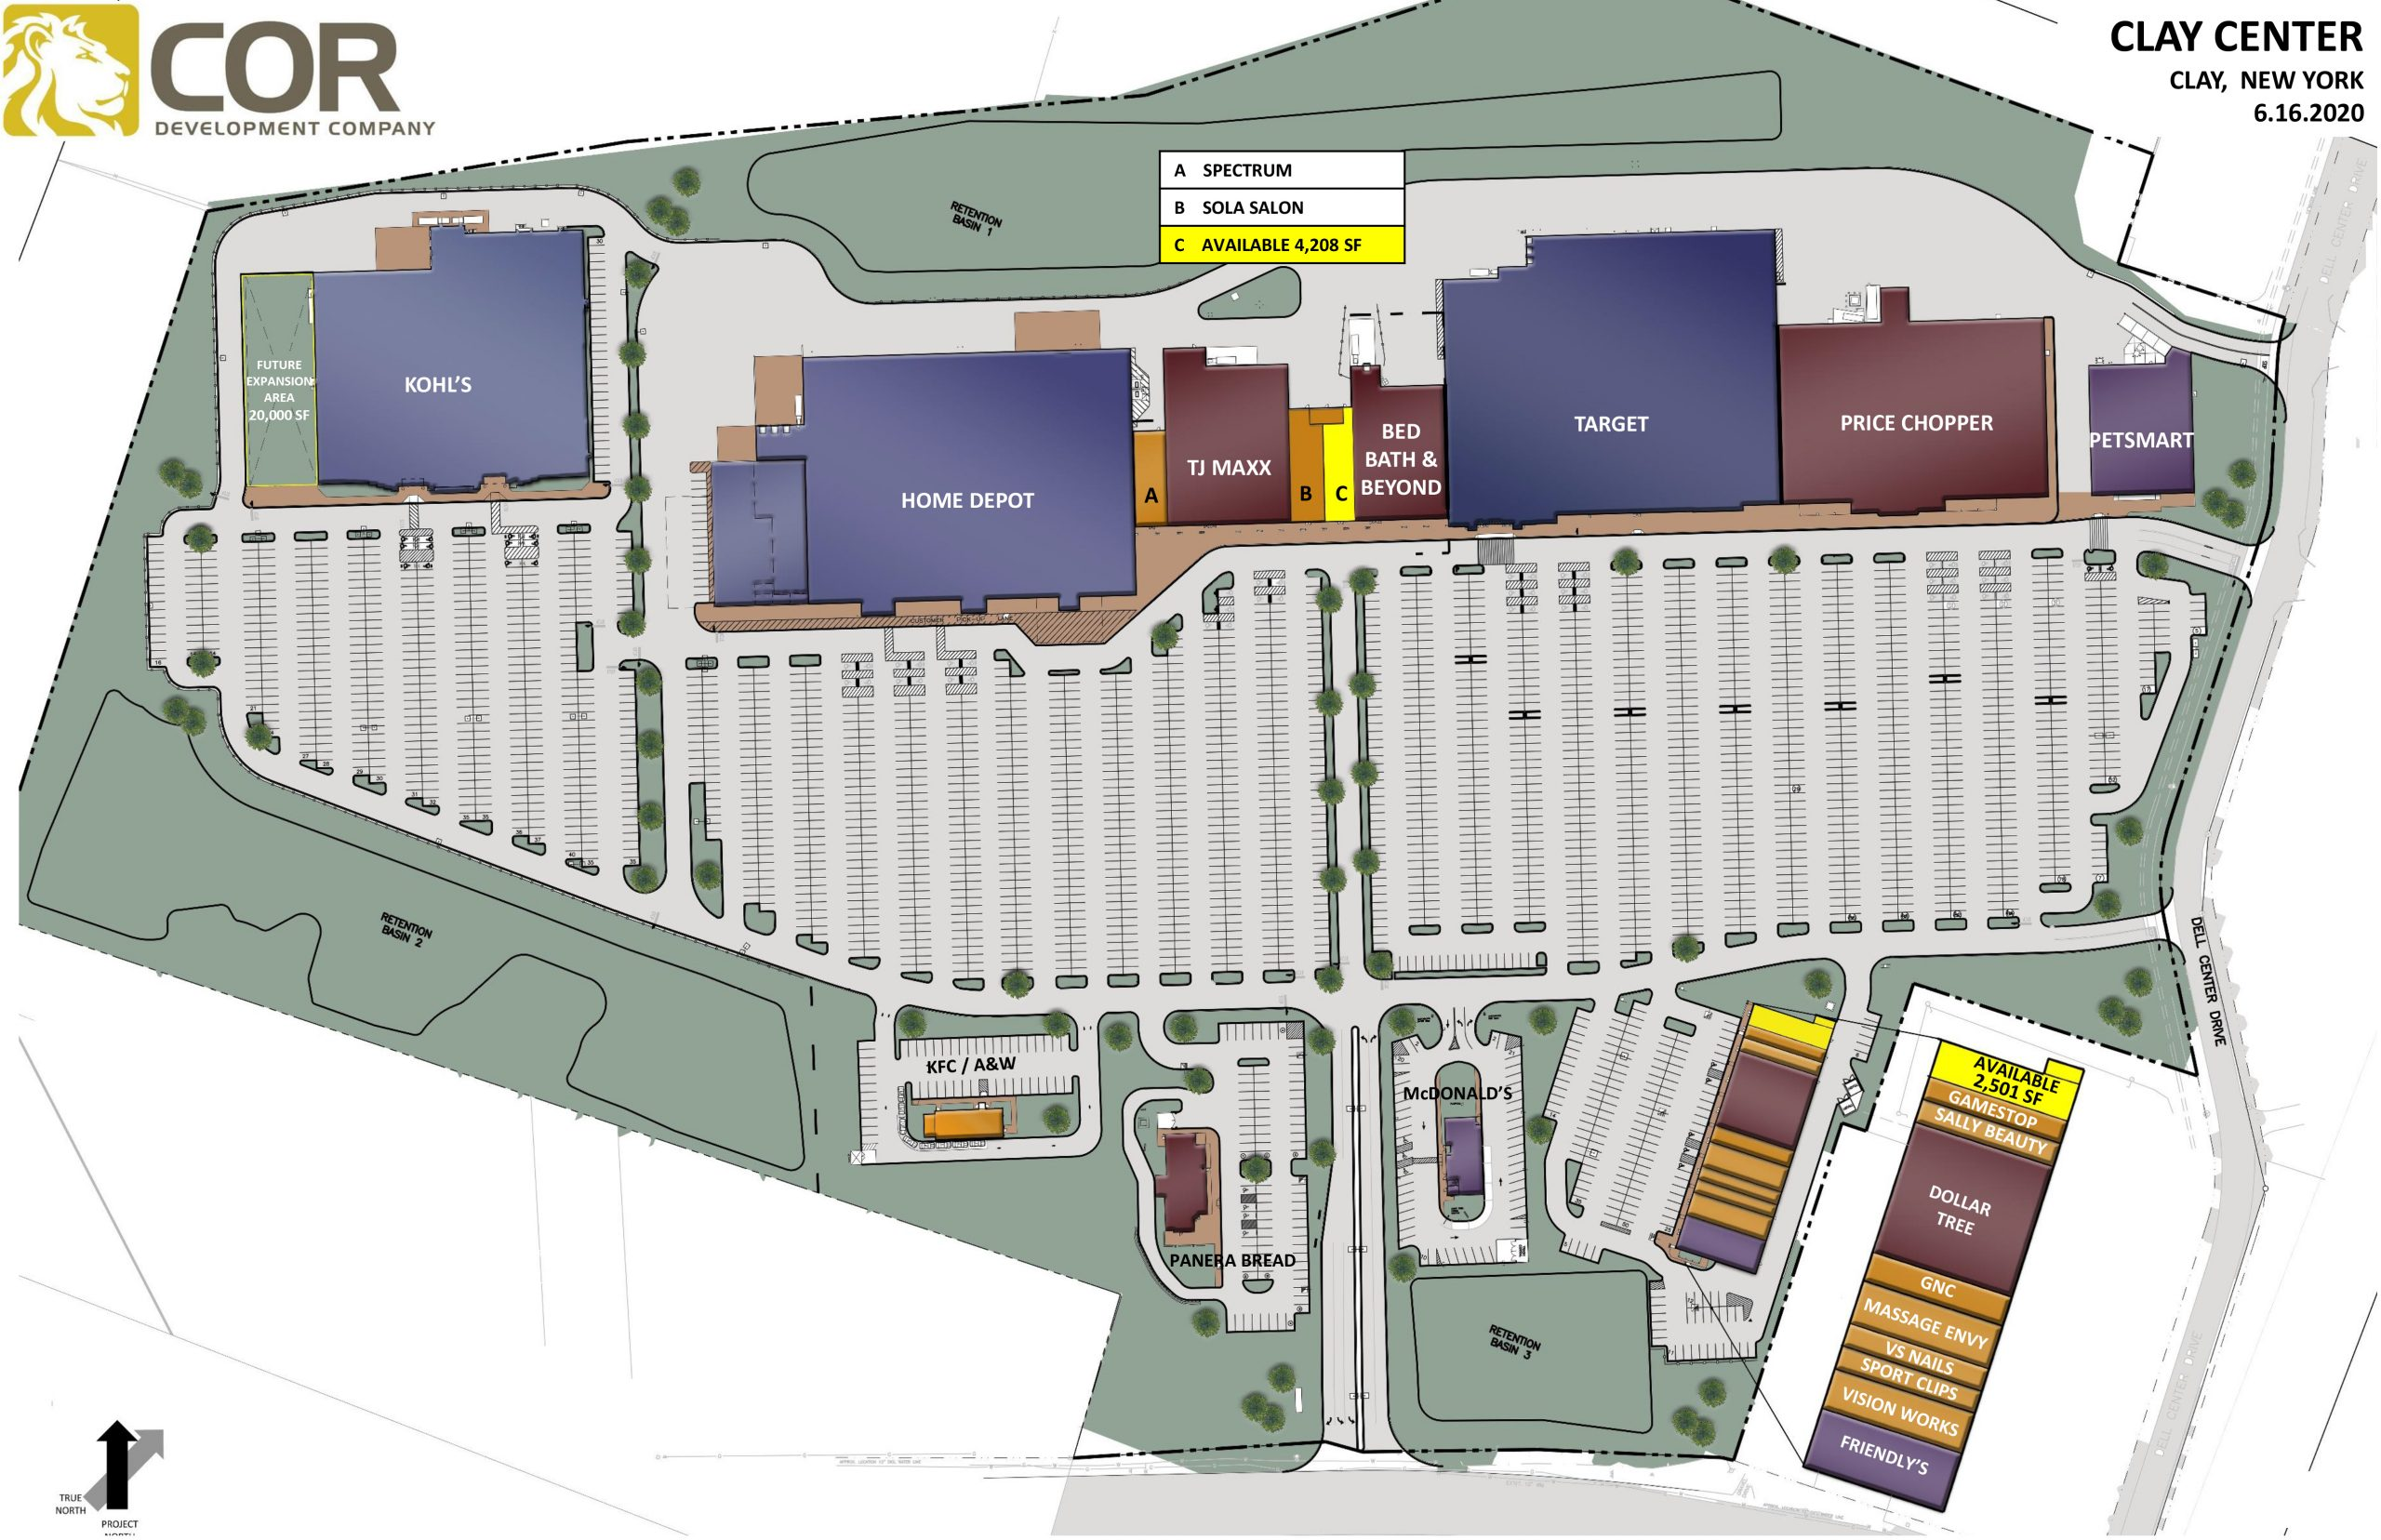 COR CENTER MASTER SITE PLAN scaled - COR Center – Clay, NY